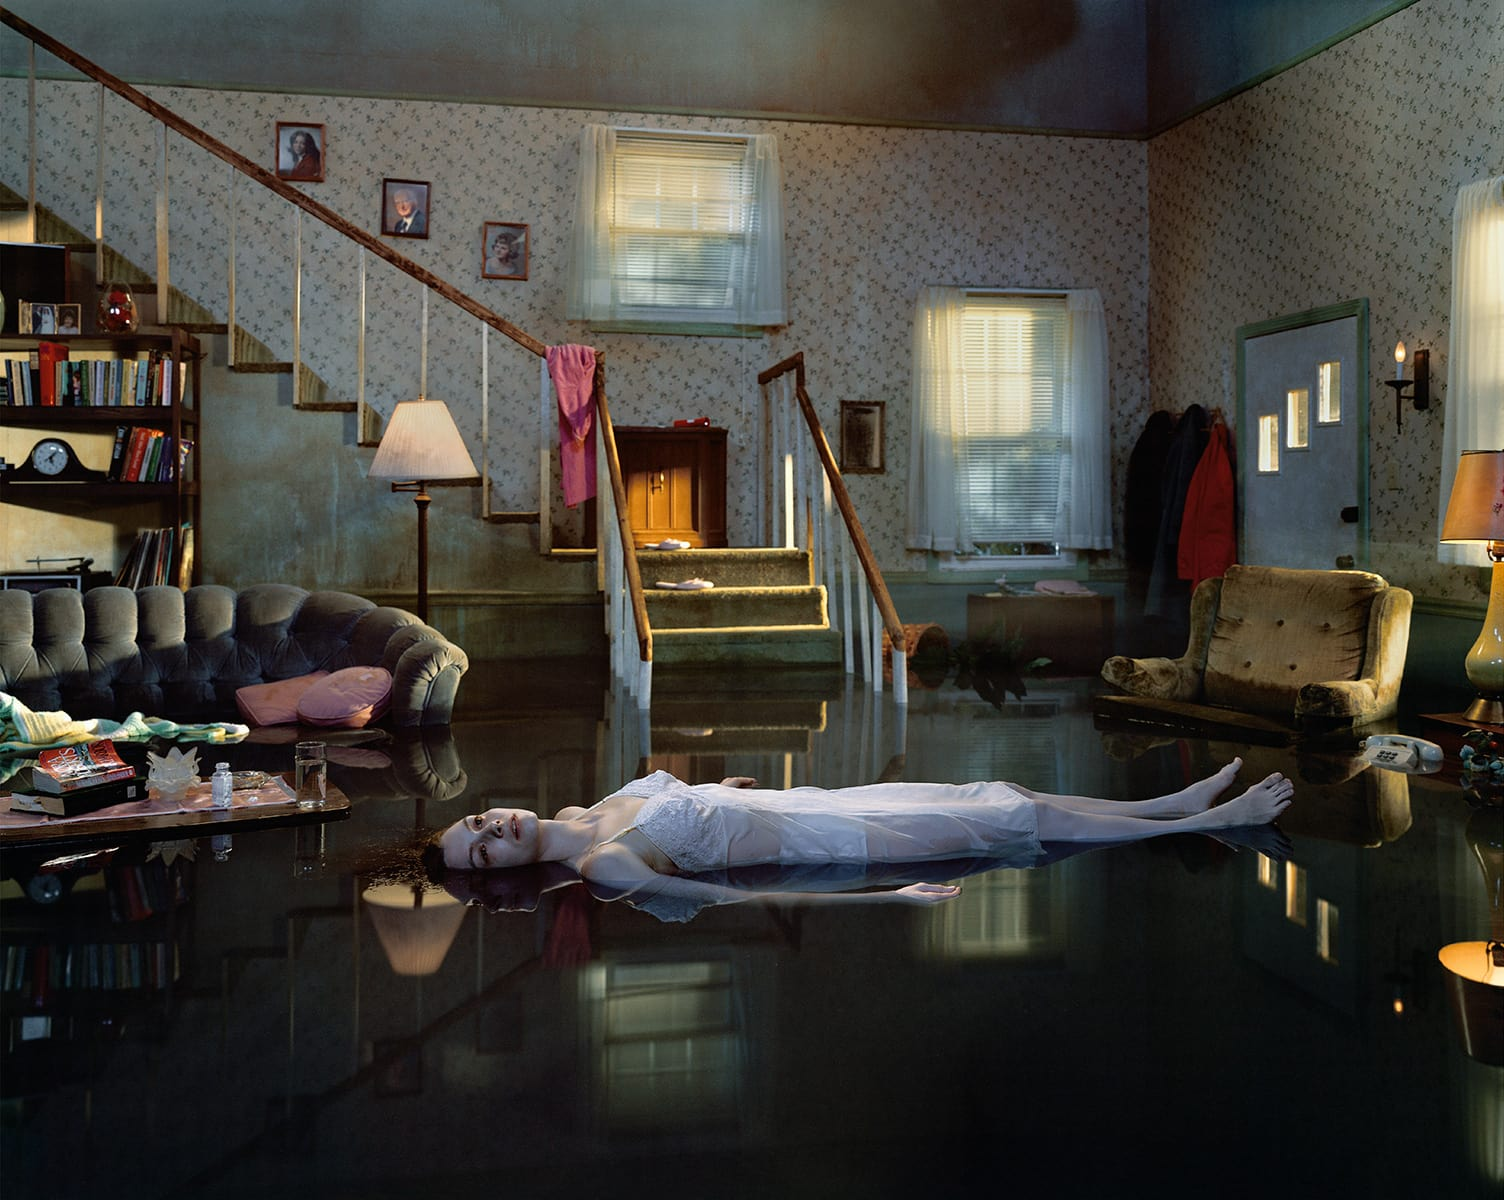 Tableau Photographer Gregory Crewdson - Untitled (Ophelia), 2001